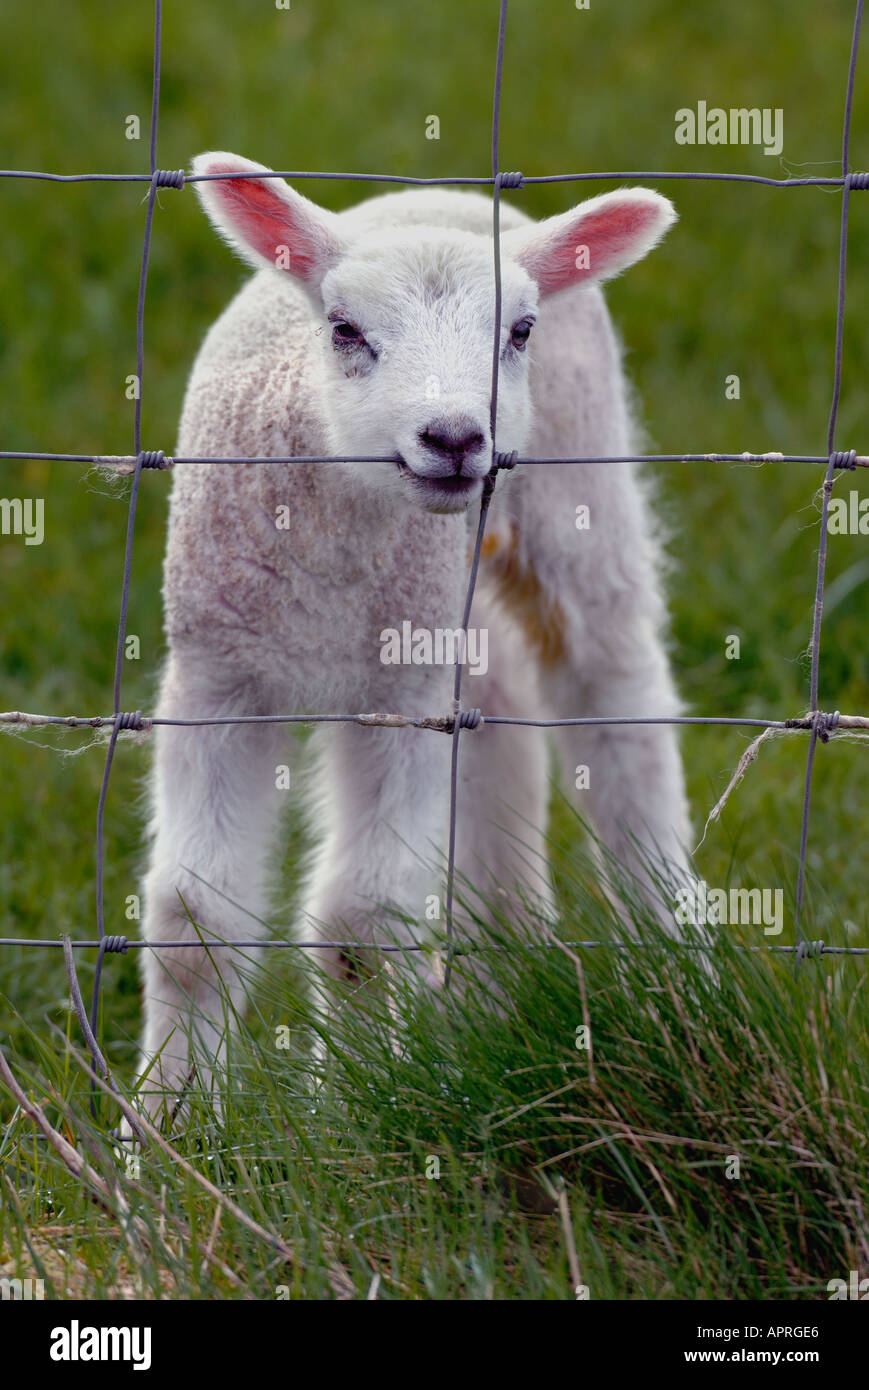 Milksheep Stock Photos & Milksheep Stock Images - Alamy